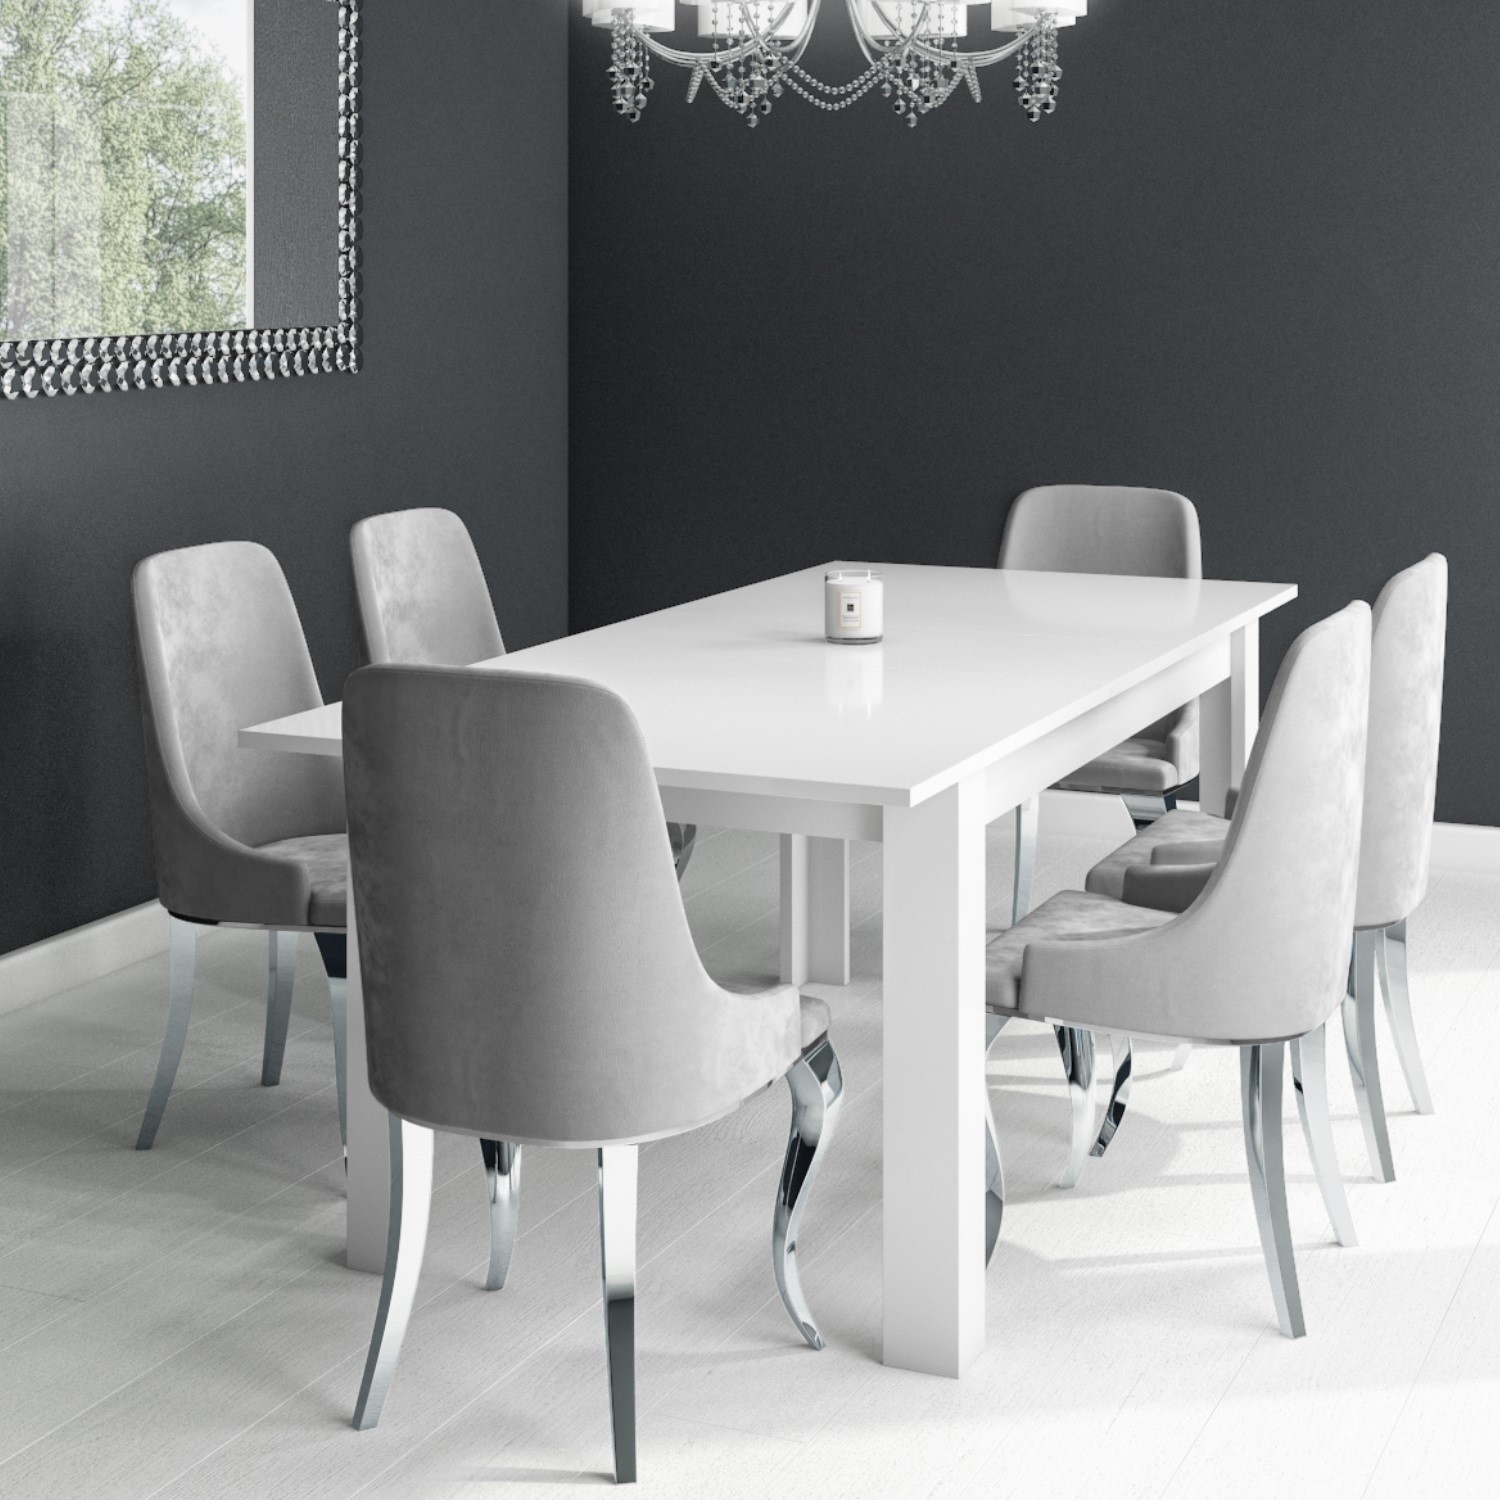 White Extendable Dining Table With 6 Silver Grey Velvet Chairs With Chrome Legs Furniture123